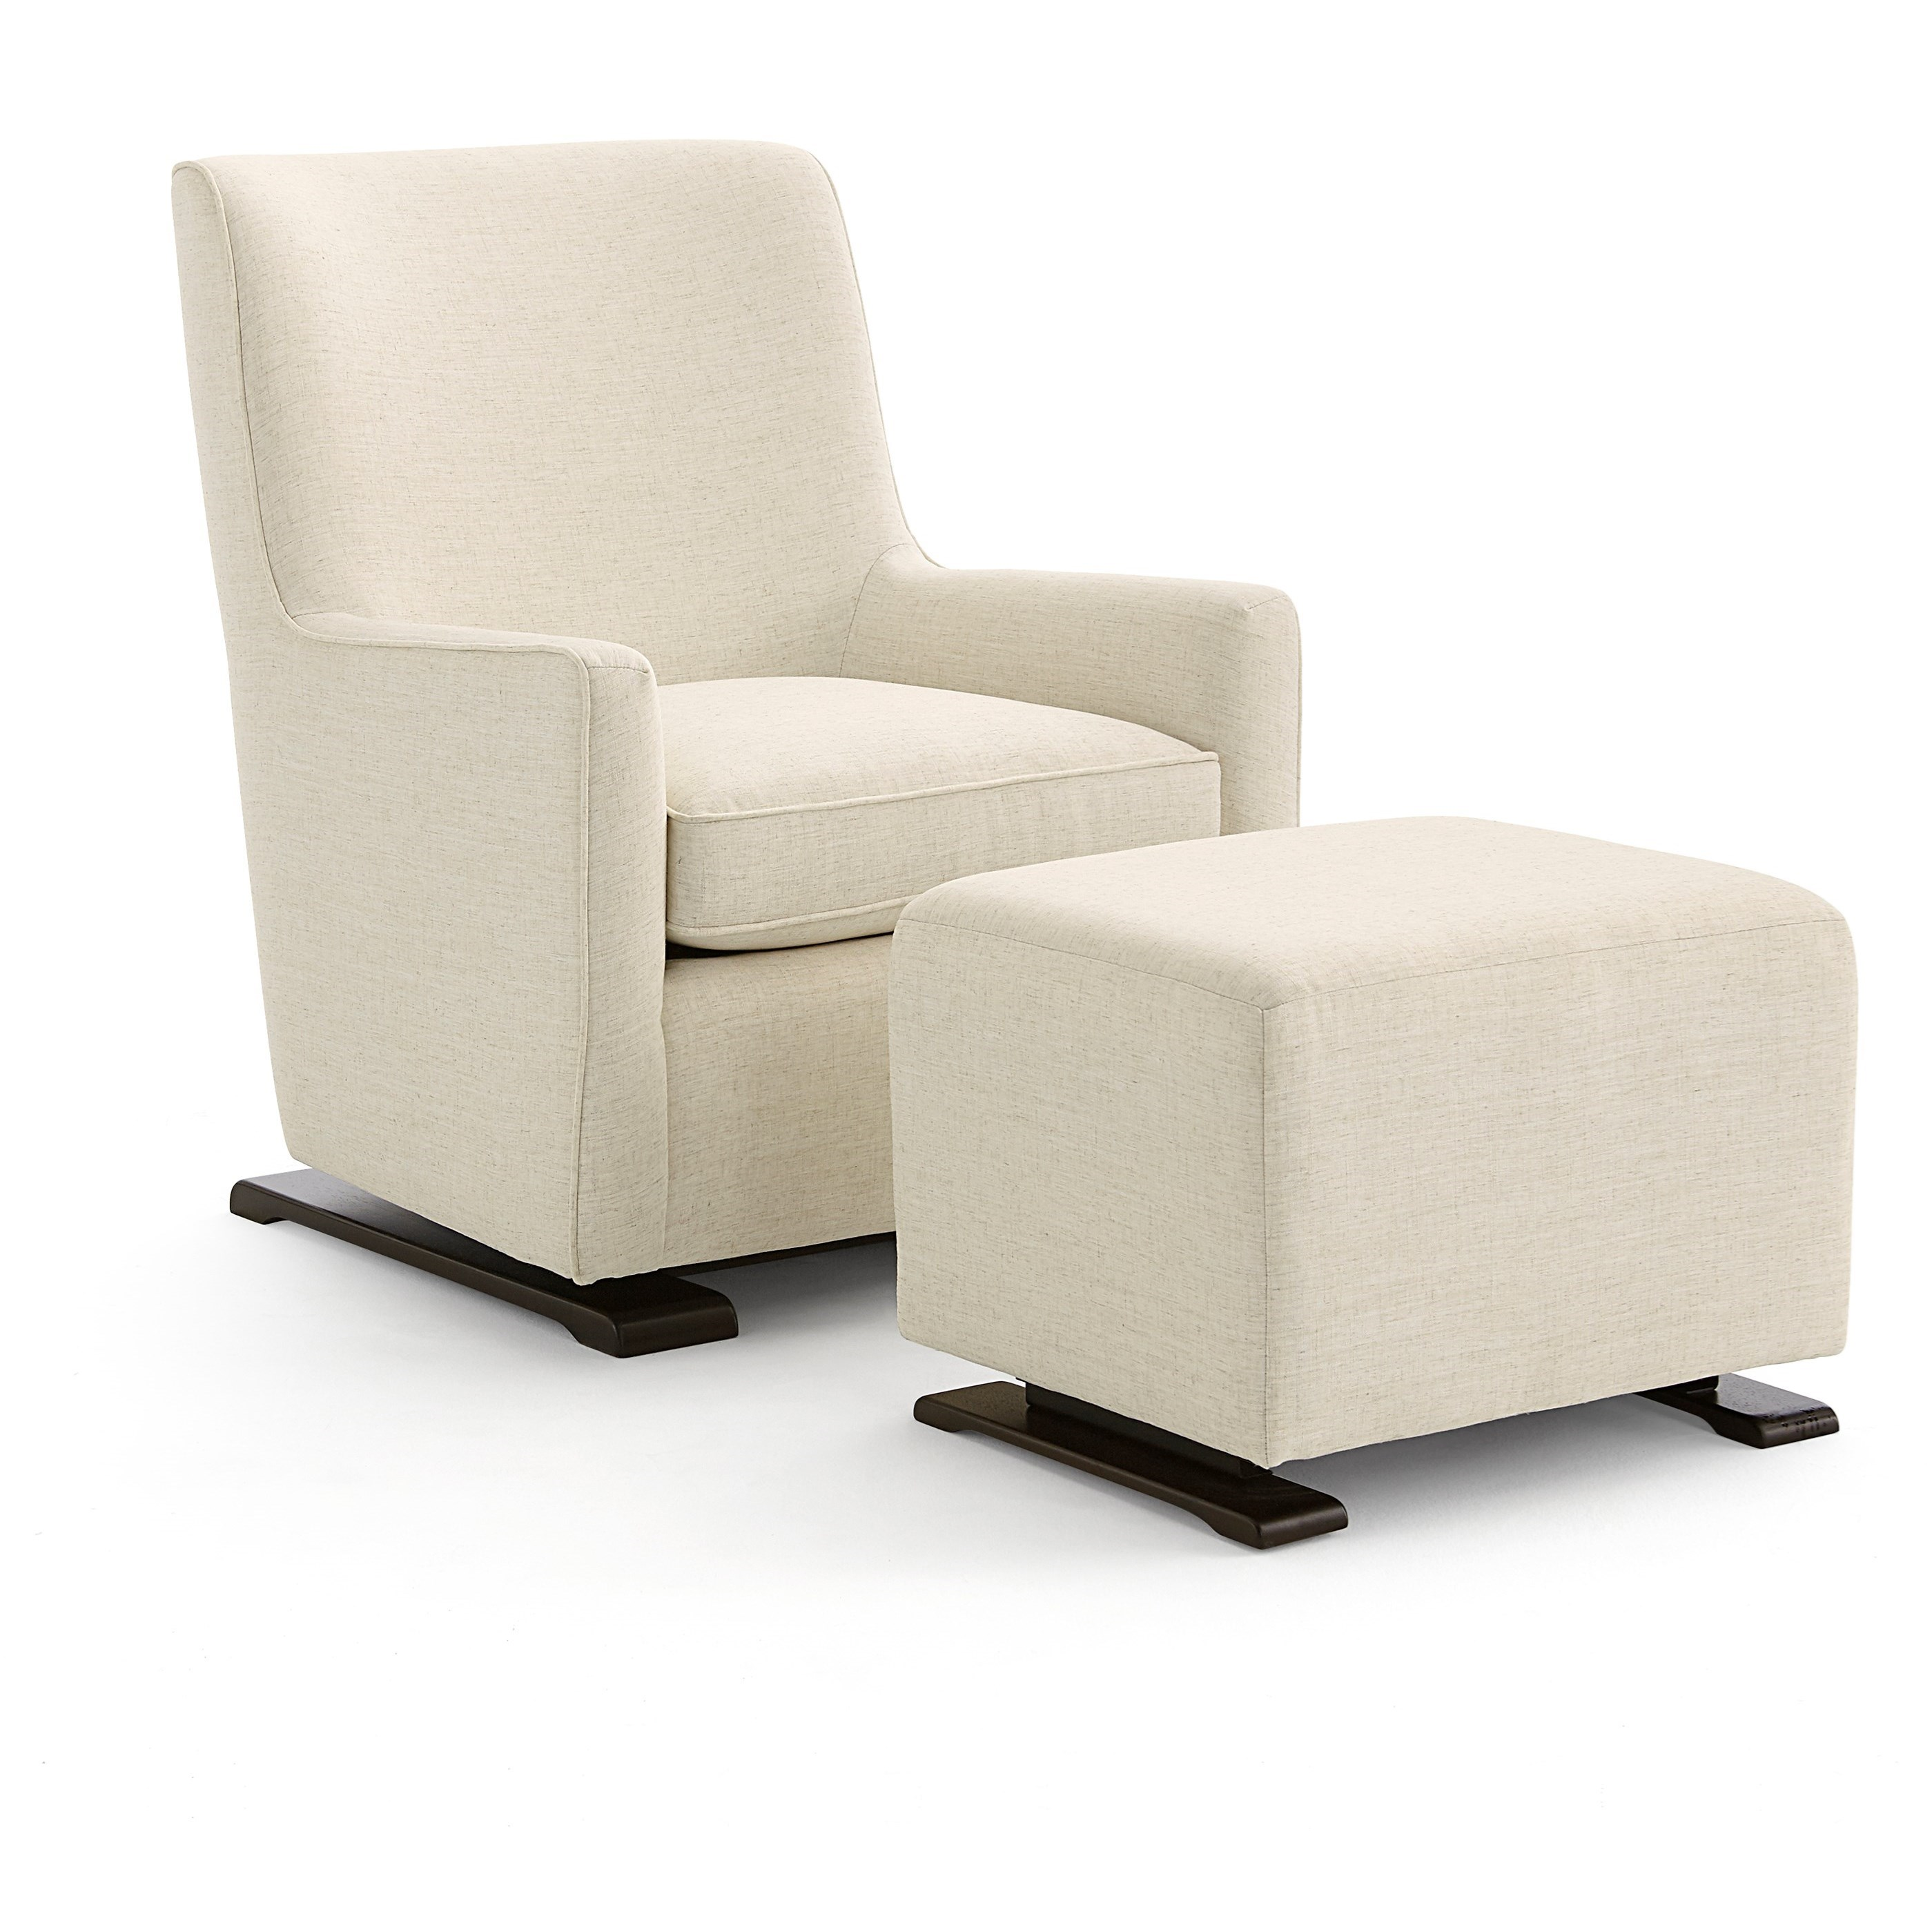 Coral  Swivel Glider and Gliding Ottoman Set by Best Home Furnishings at Walker's Furniture